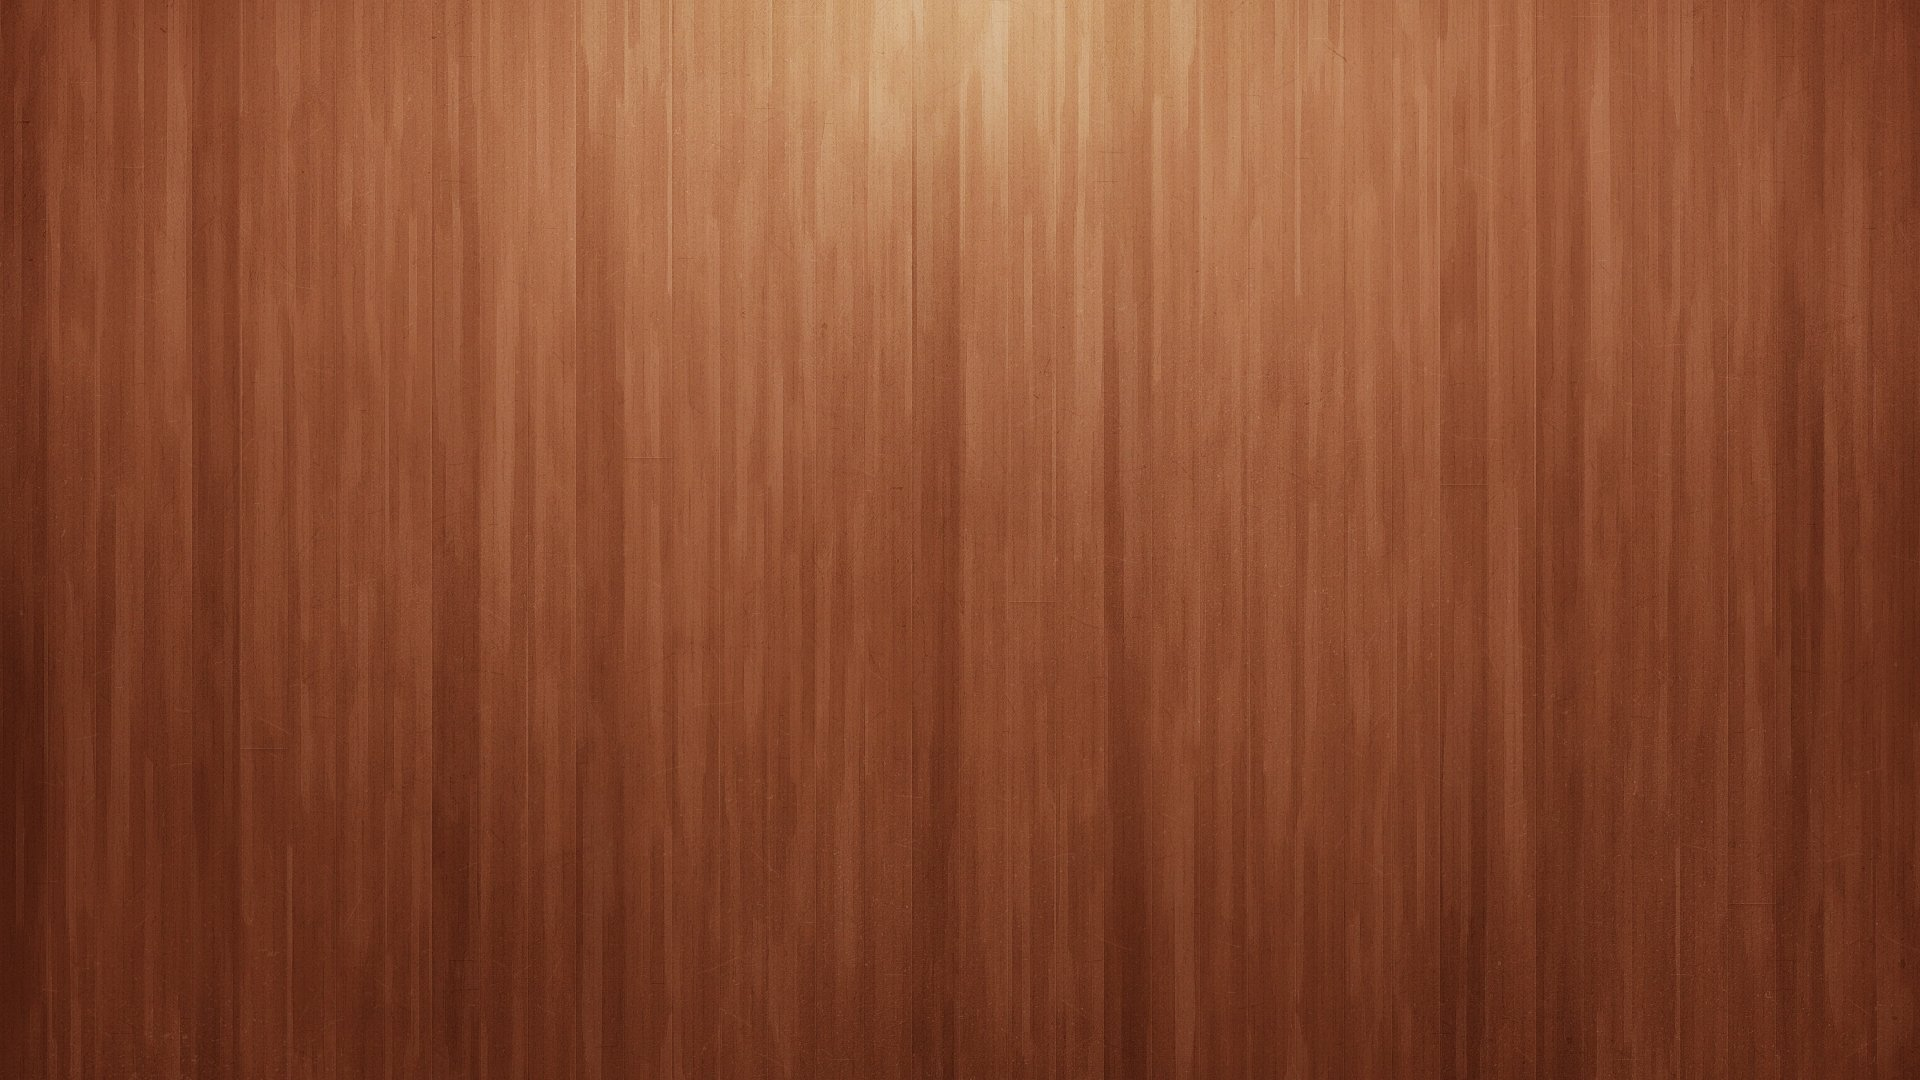 Wallpaper That Looks Like Wood 06 0f 10 with Plywood ...